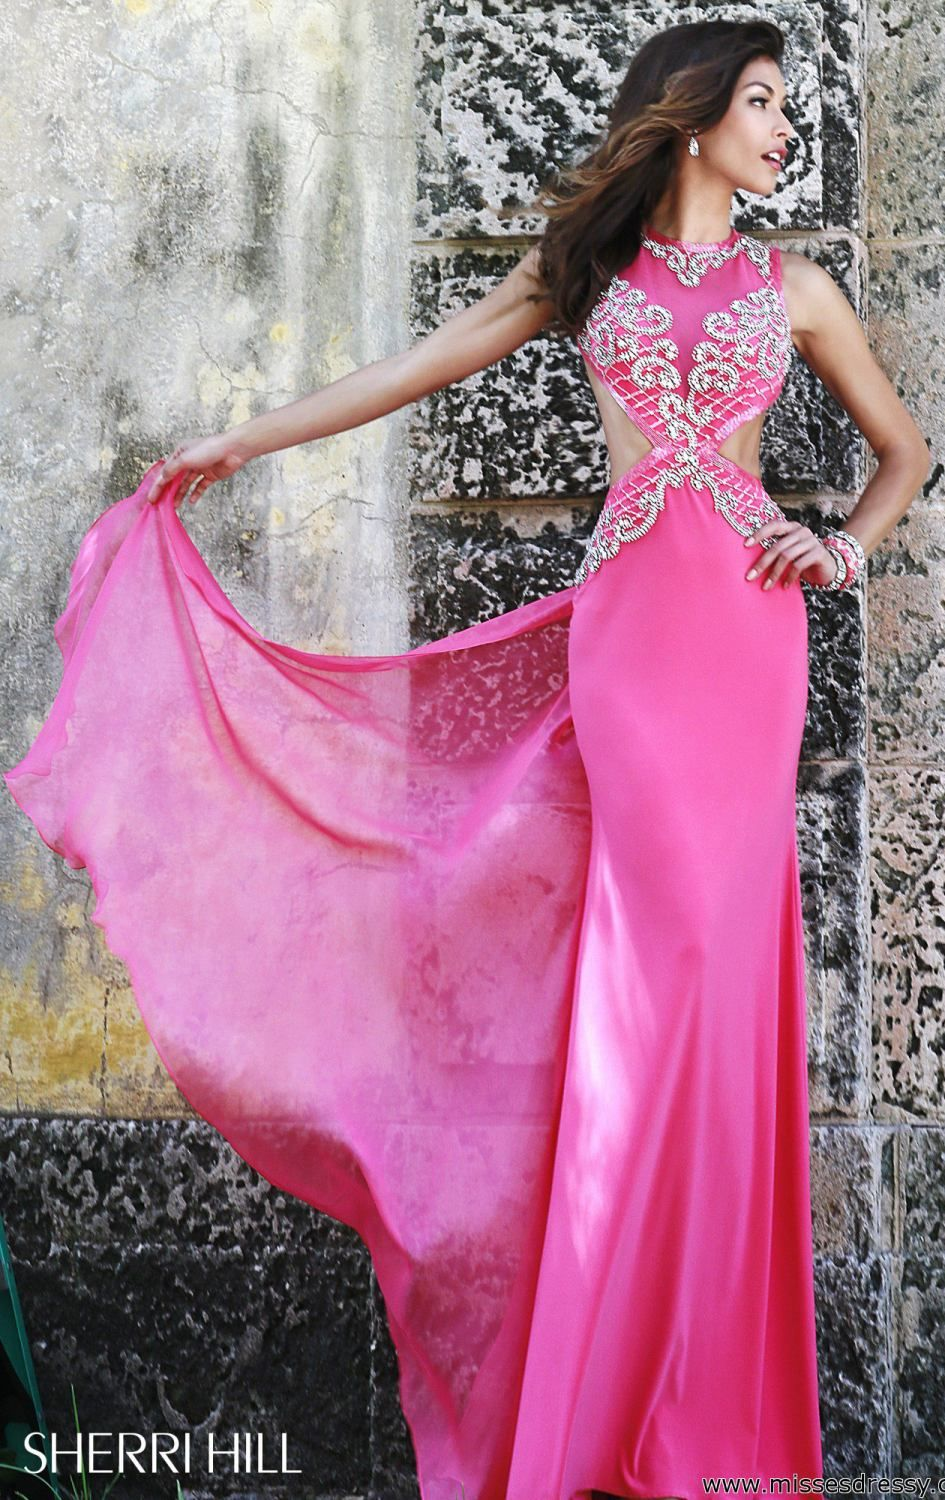 Sherri Hill 11158 Dress - MissesDressy.com | SHERRI HILL / Fall 2014 ...